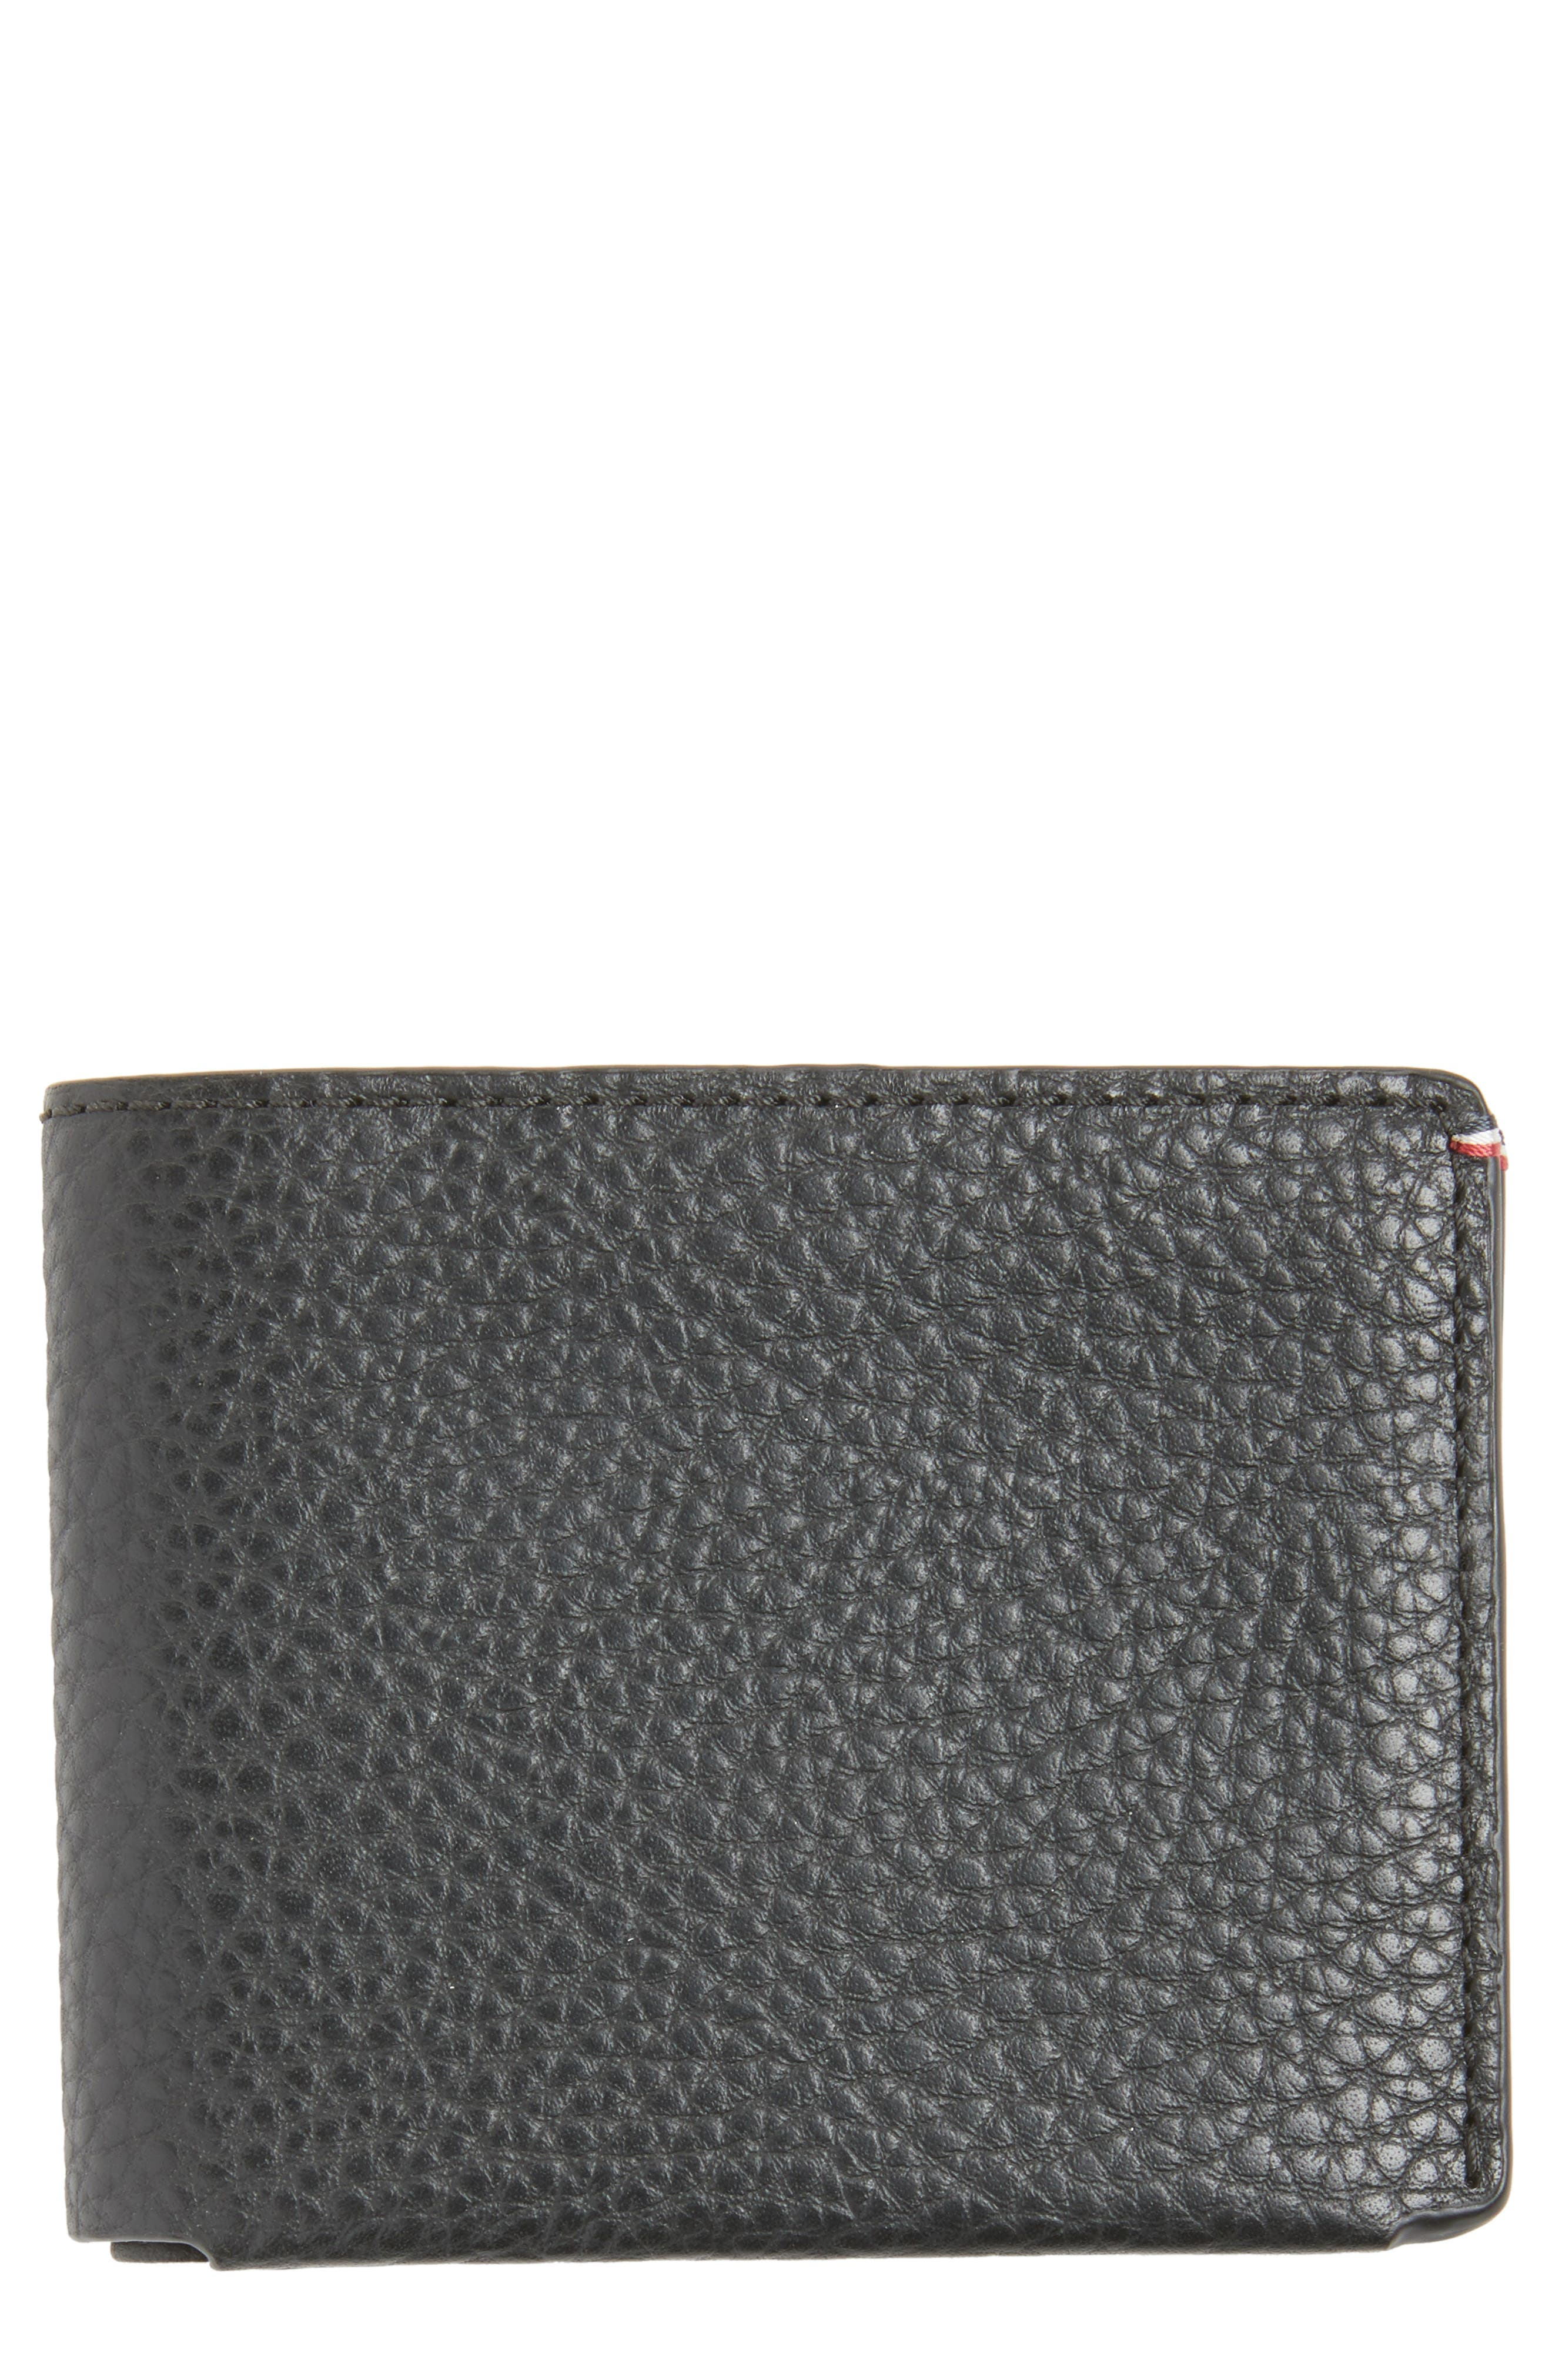 Jack Mason Leather Wallet